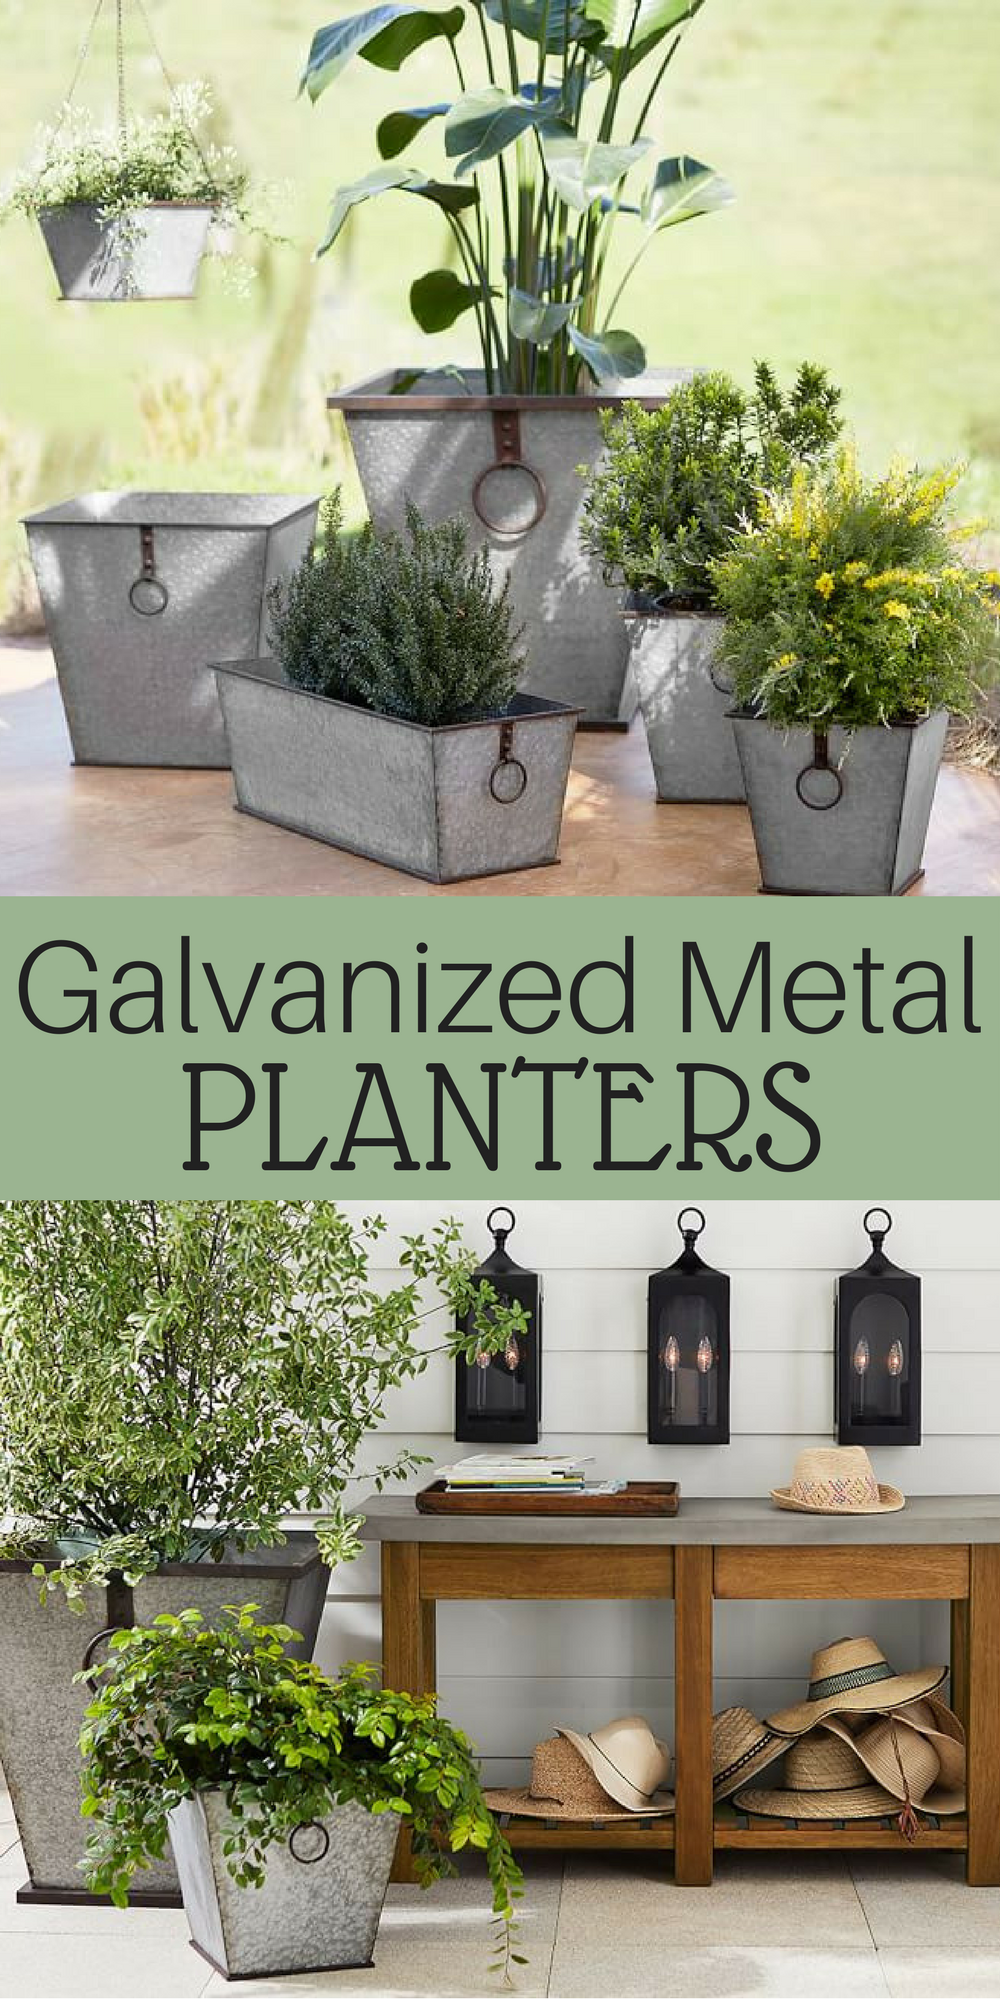 Galvanized Metal Planters Rustic Meets Contemporary In These Chic Planters They Feature Contrasting Trim D Rustic Planters Rustic Patio Garden Lighting Diy